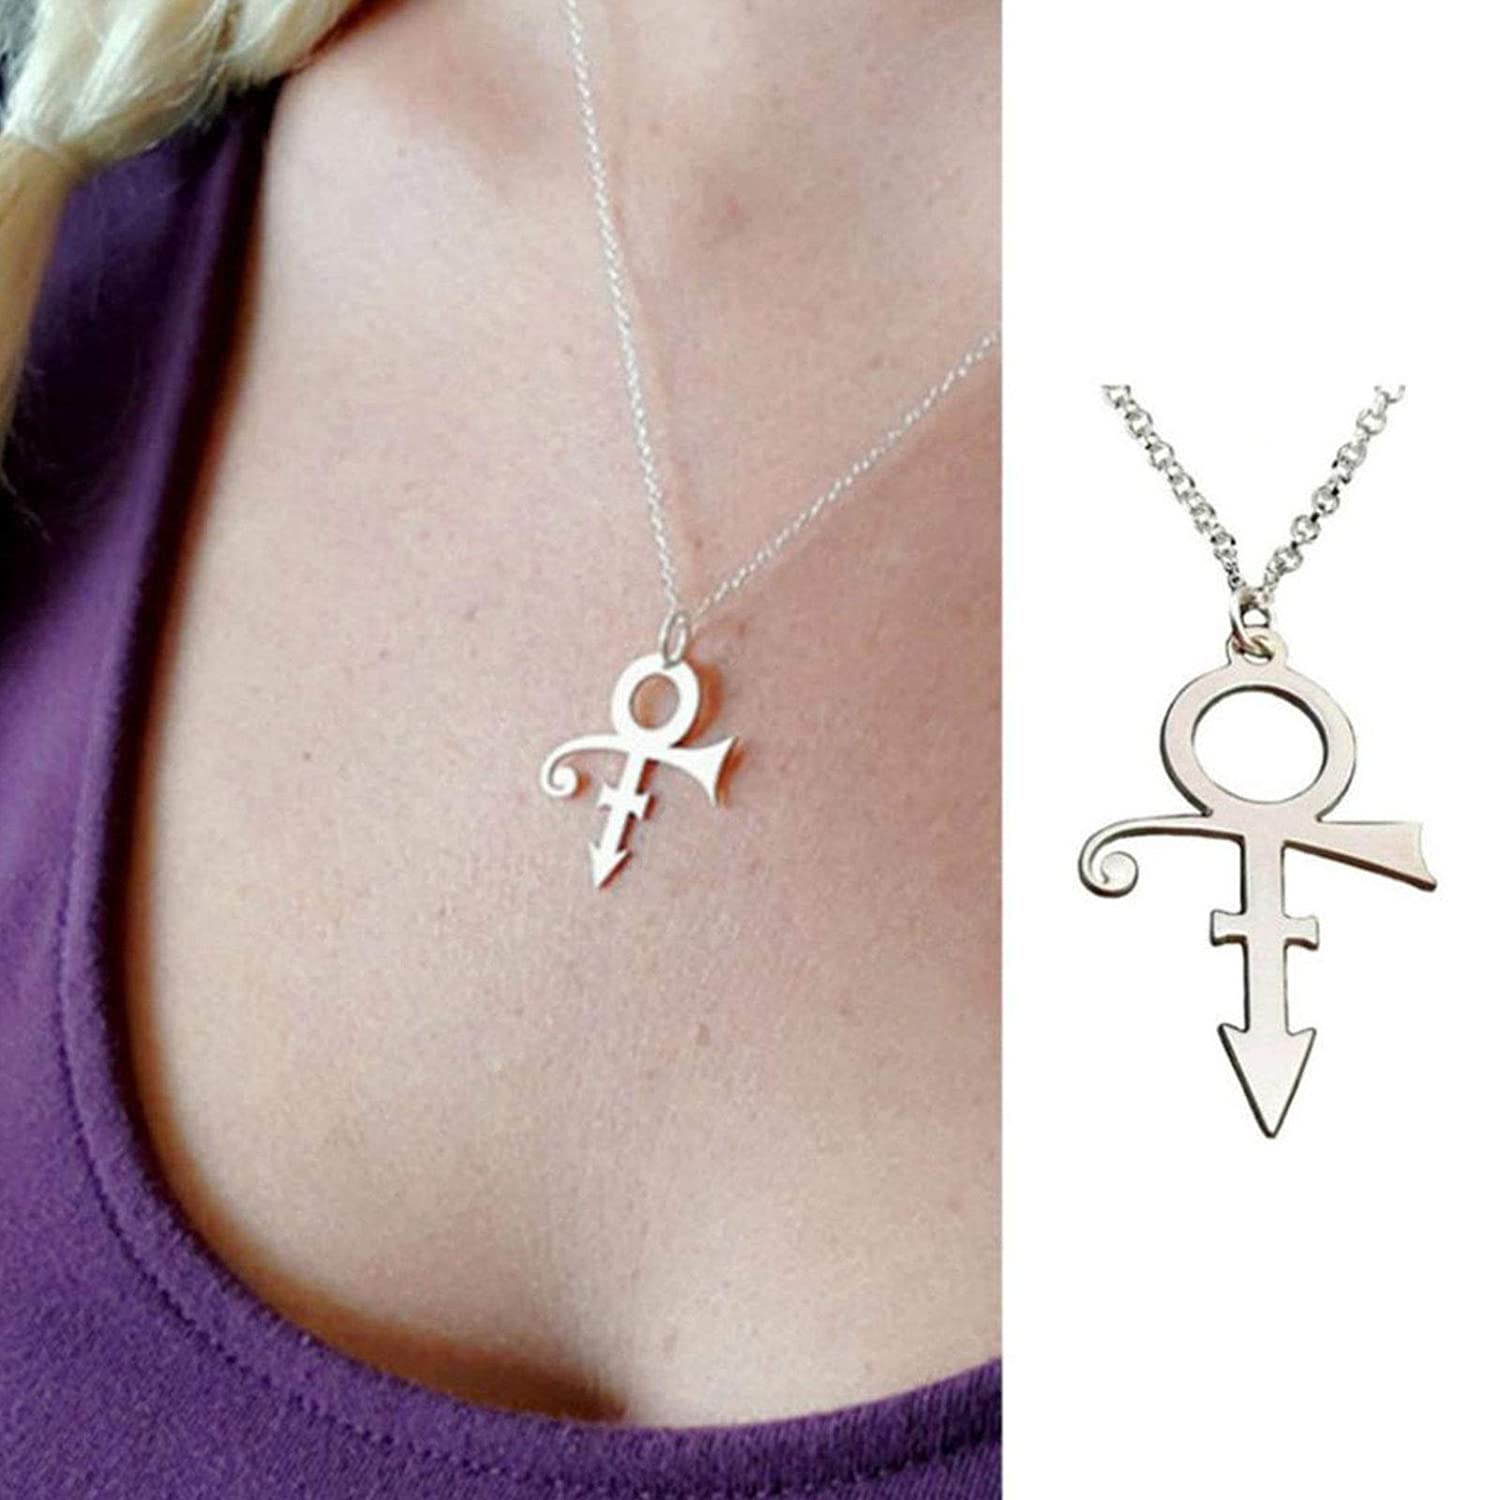 Prince Rogers Nelson Symbol Pendant Necklace Silver or Black Free Shipping